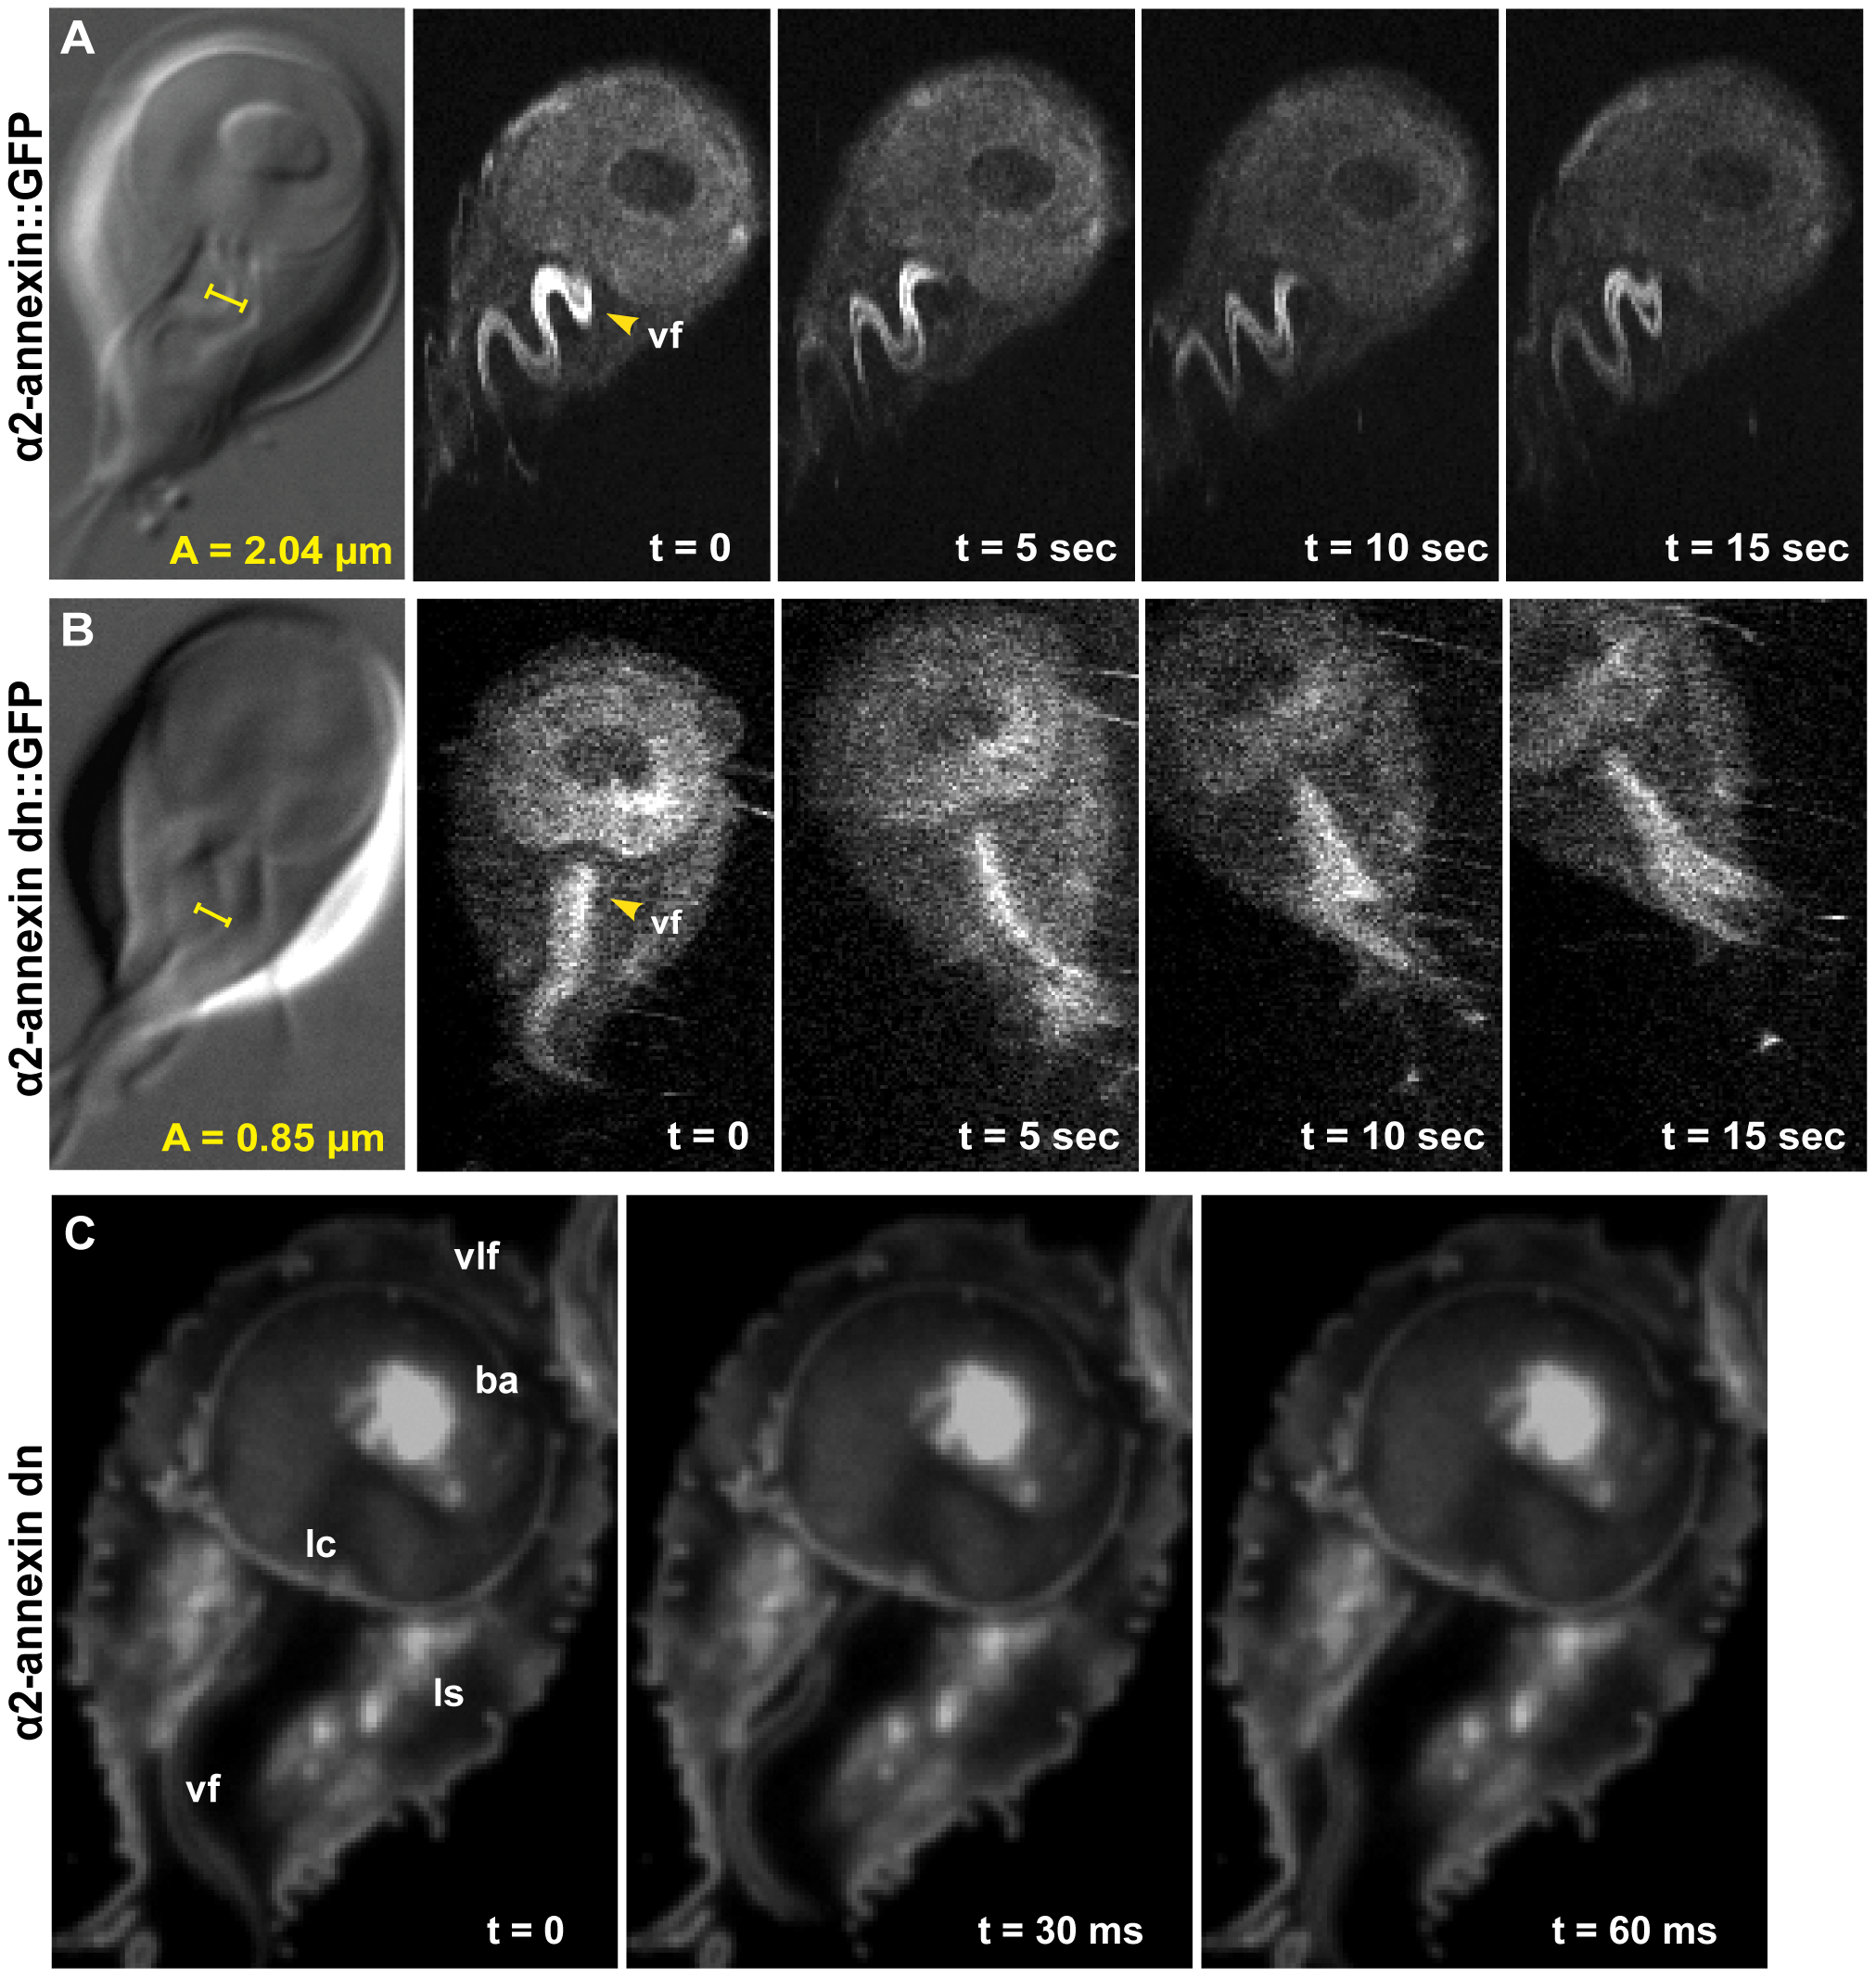 Overexpression of a dominant negative alpha2-annexin::GFP (D122A, D275A) decreases ventral flagellar waveform amplitude with only slight decreases in attachment.